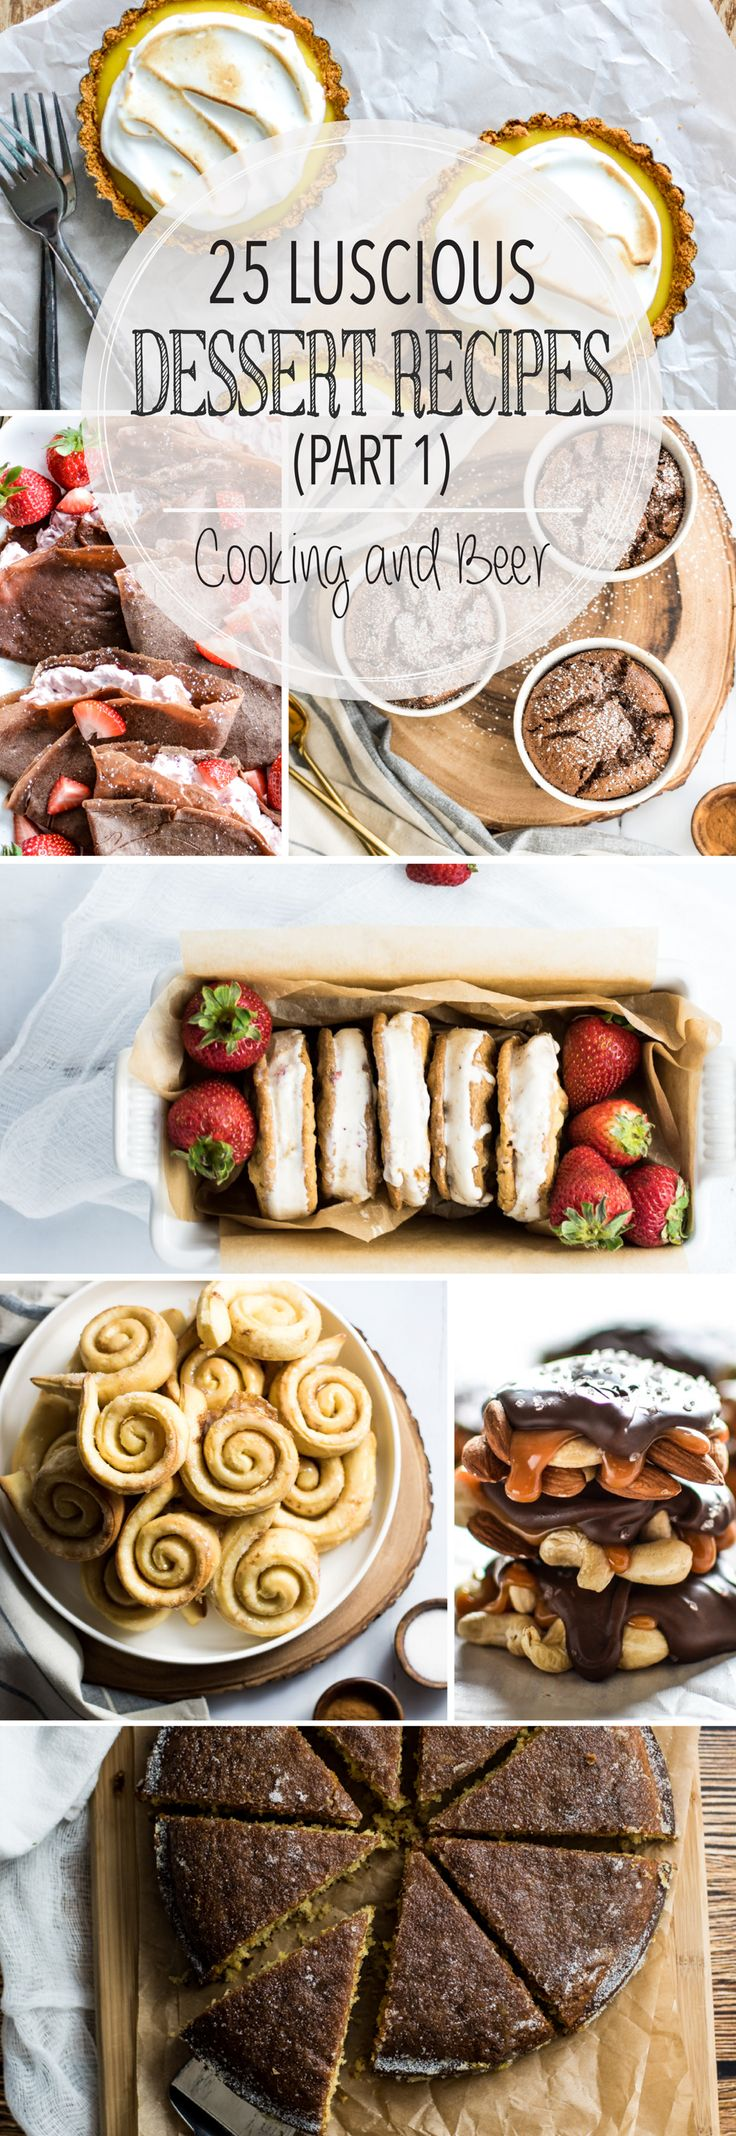 From pots de creme to coffee cake and from slab pies to homemade ice cream, here are the first 25 of 50 luscious dessert recipes on Cooking and Beer!